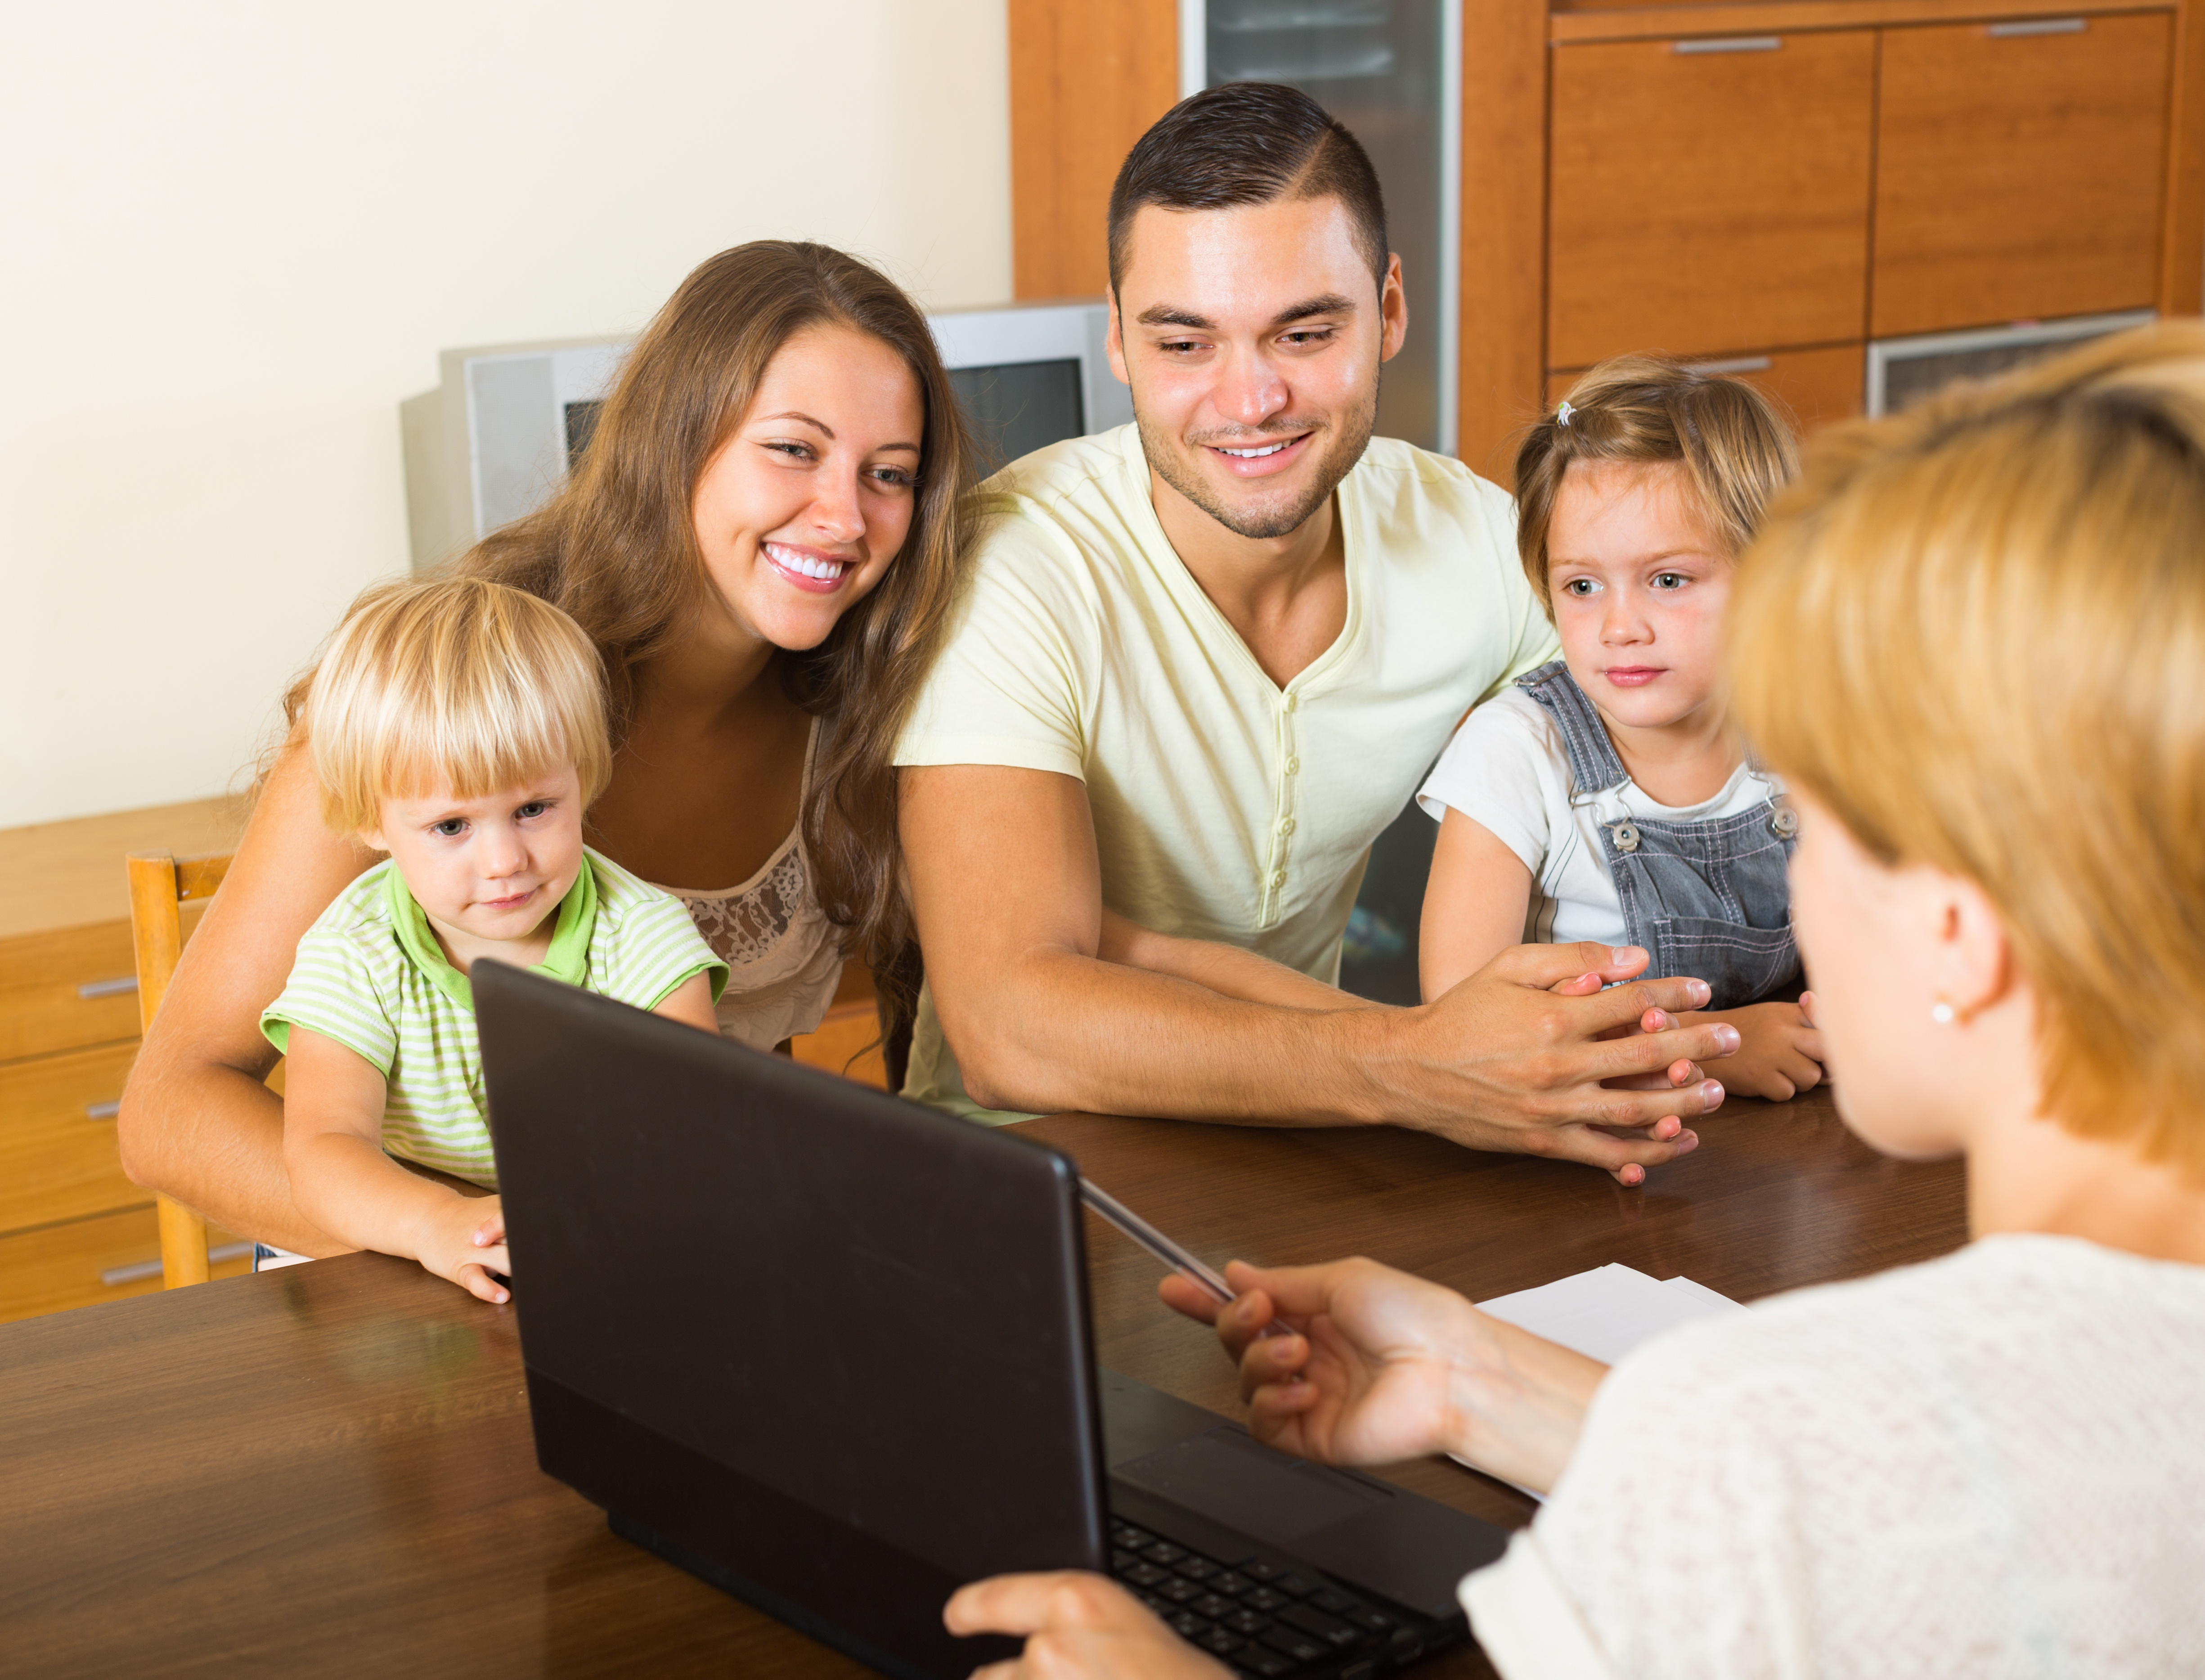 A social worker assisting a family